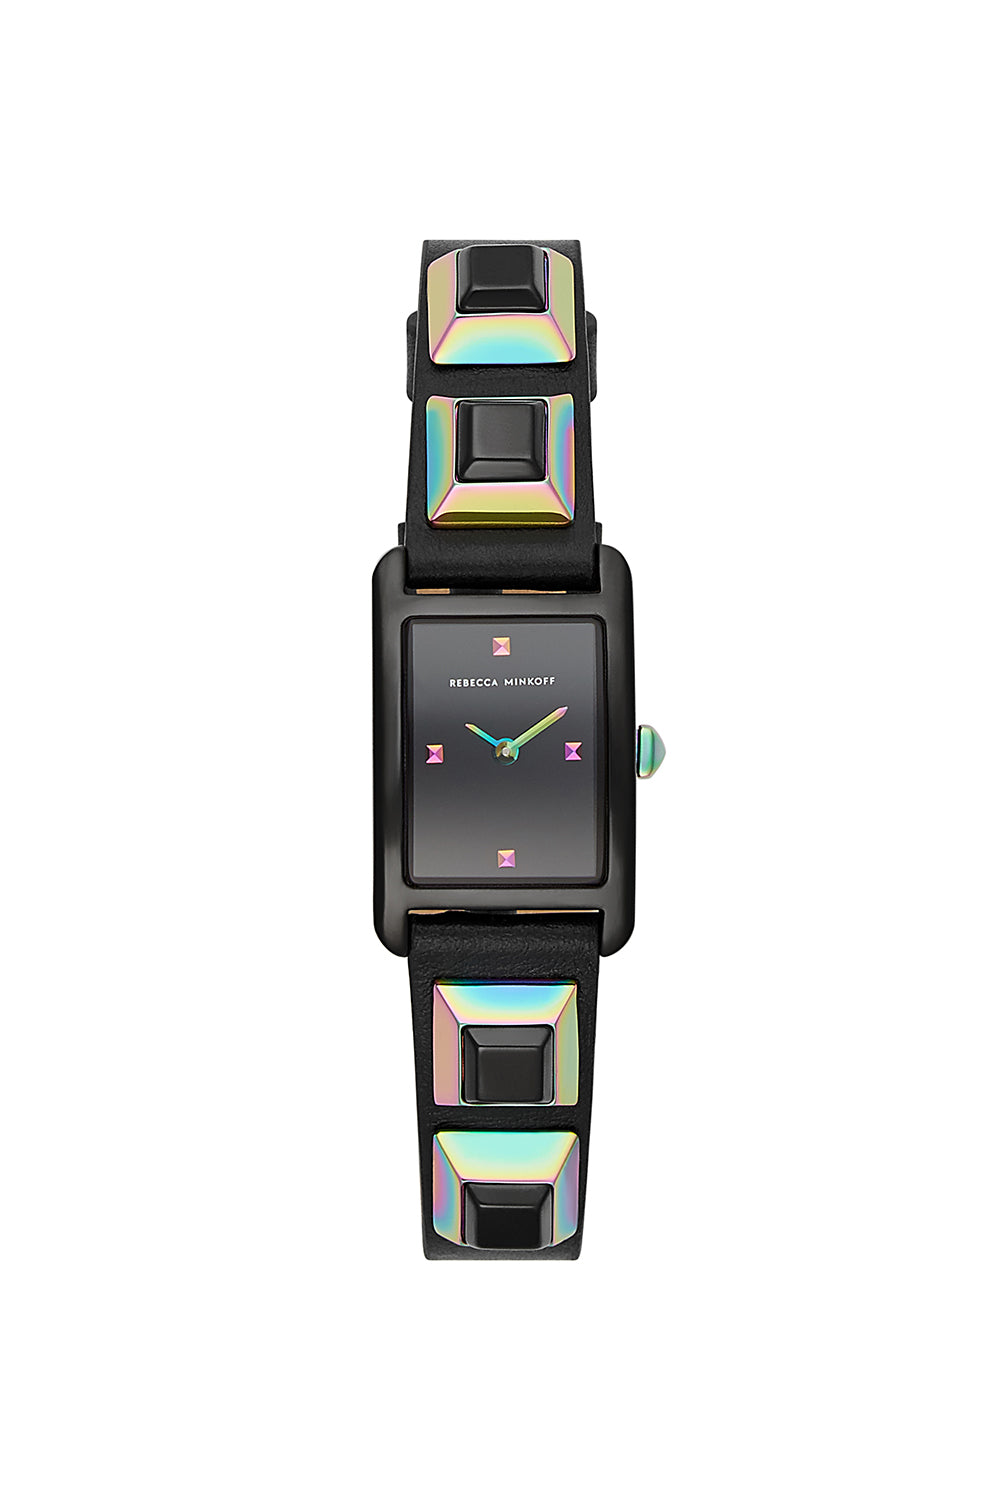 Rebecca-Minkoff Moment Black Tone Black Leather Strap Watch, 19x30MM